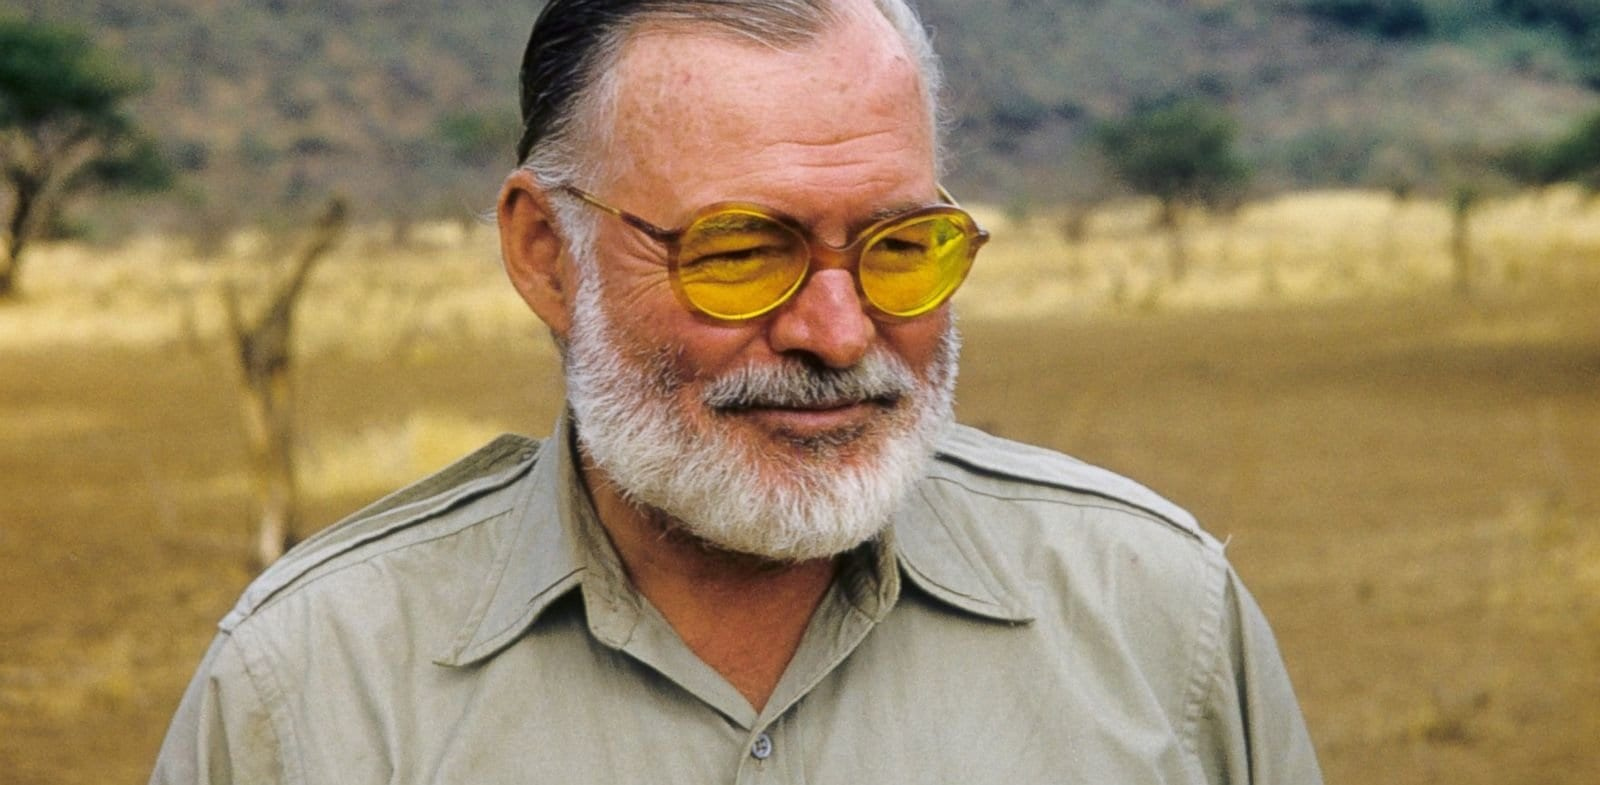 hemingway in nature The hemingway connection he ended the piece by speaking directly to hemingway's pastoral theme, his idealization of rural life and nature.